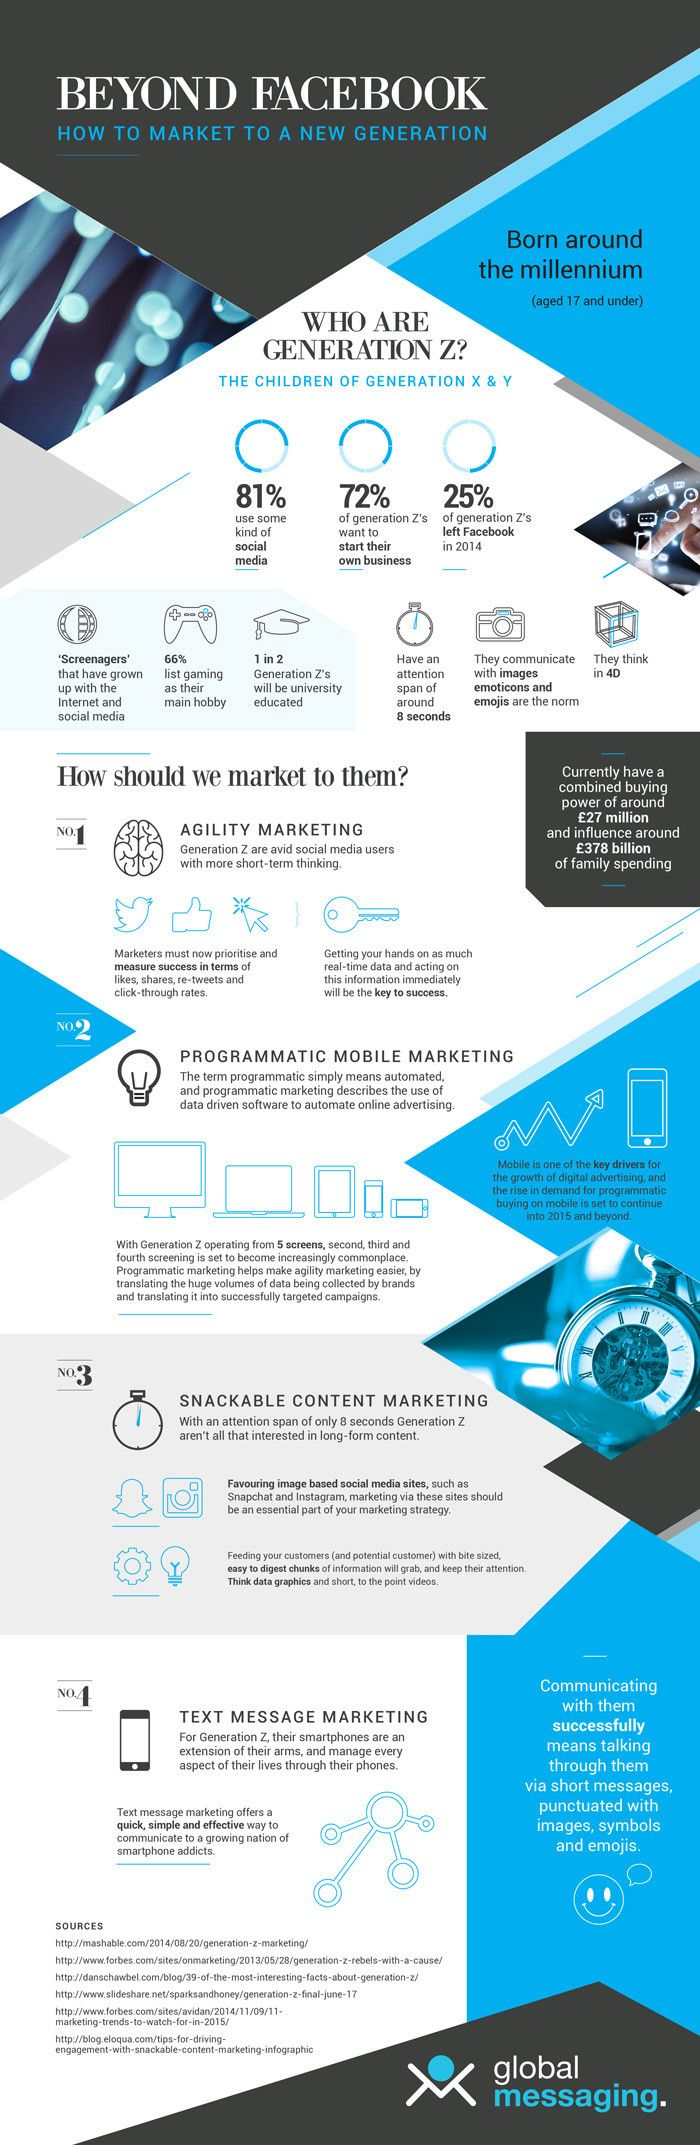 Beyond Facebook Marketing To A New Generation Infographic Infographic Marketing Facebook Marketing Strategy Social Media Infographic